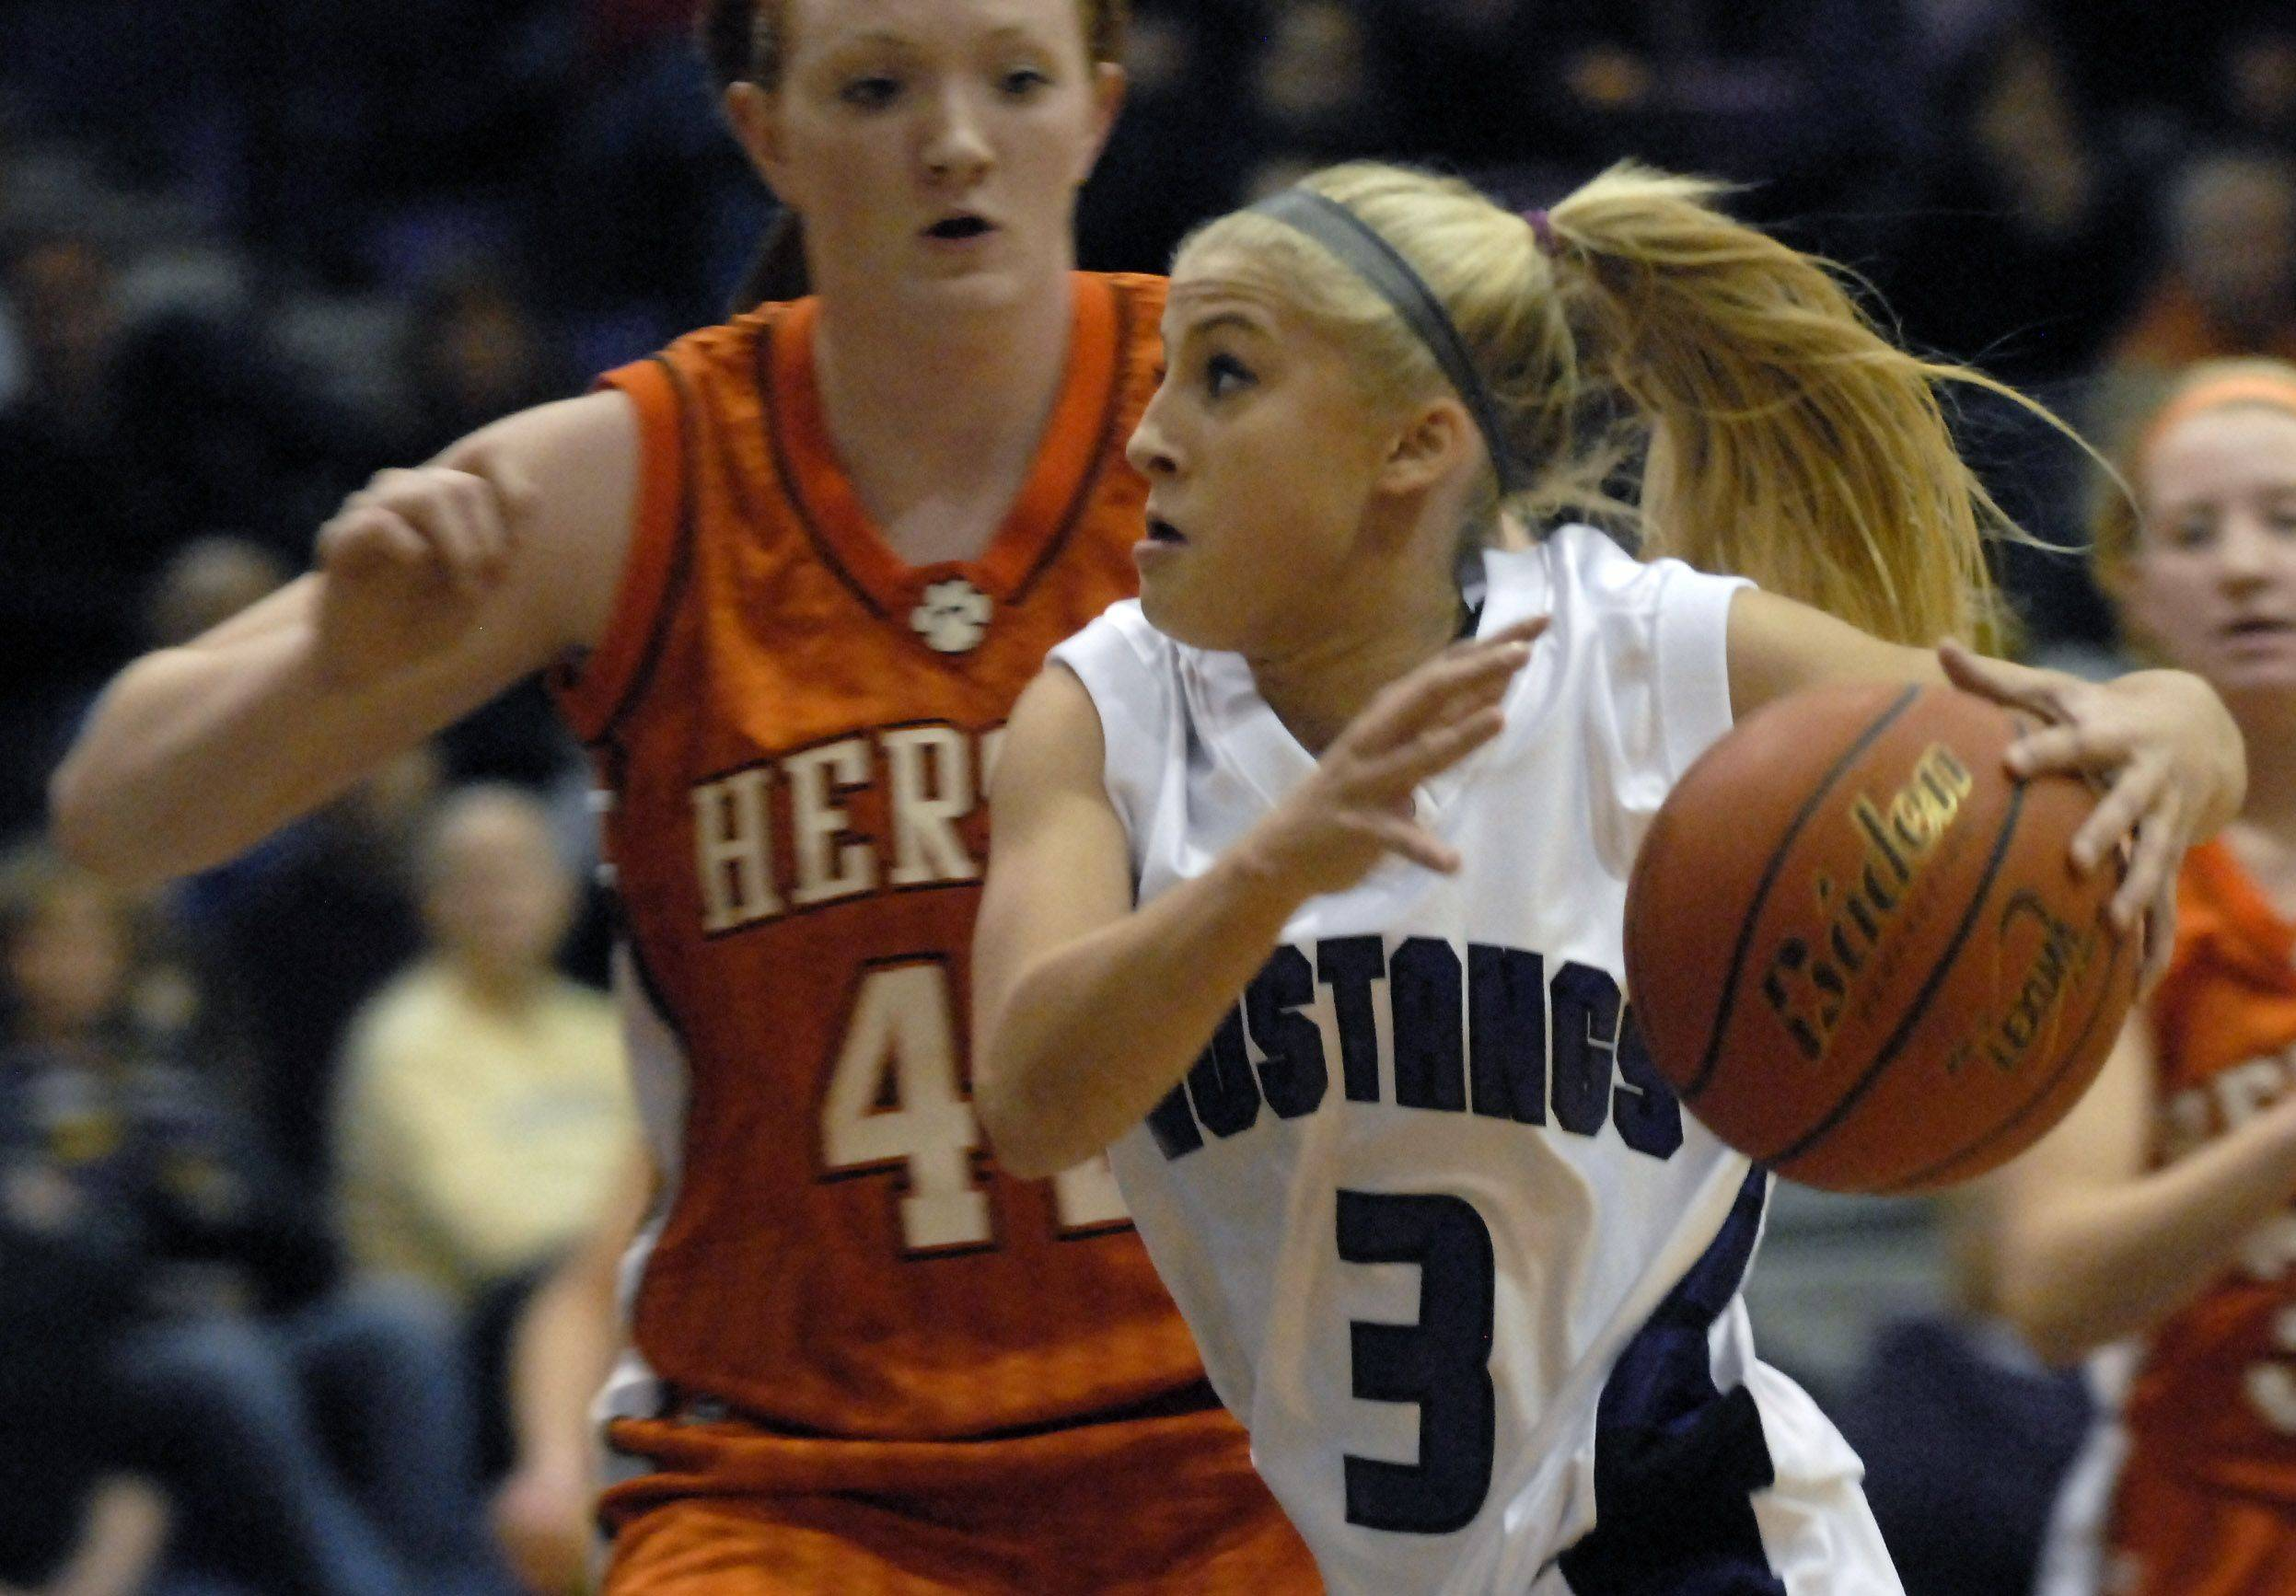 Rolling Meadows' Jacqueline Kemph drives in the lane against Hersey's Maggie Hogen Friday night at Rolling Meadows.